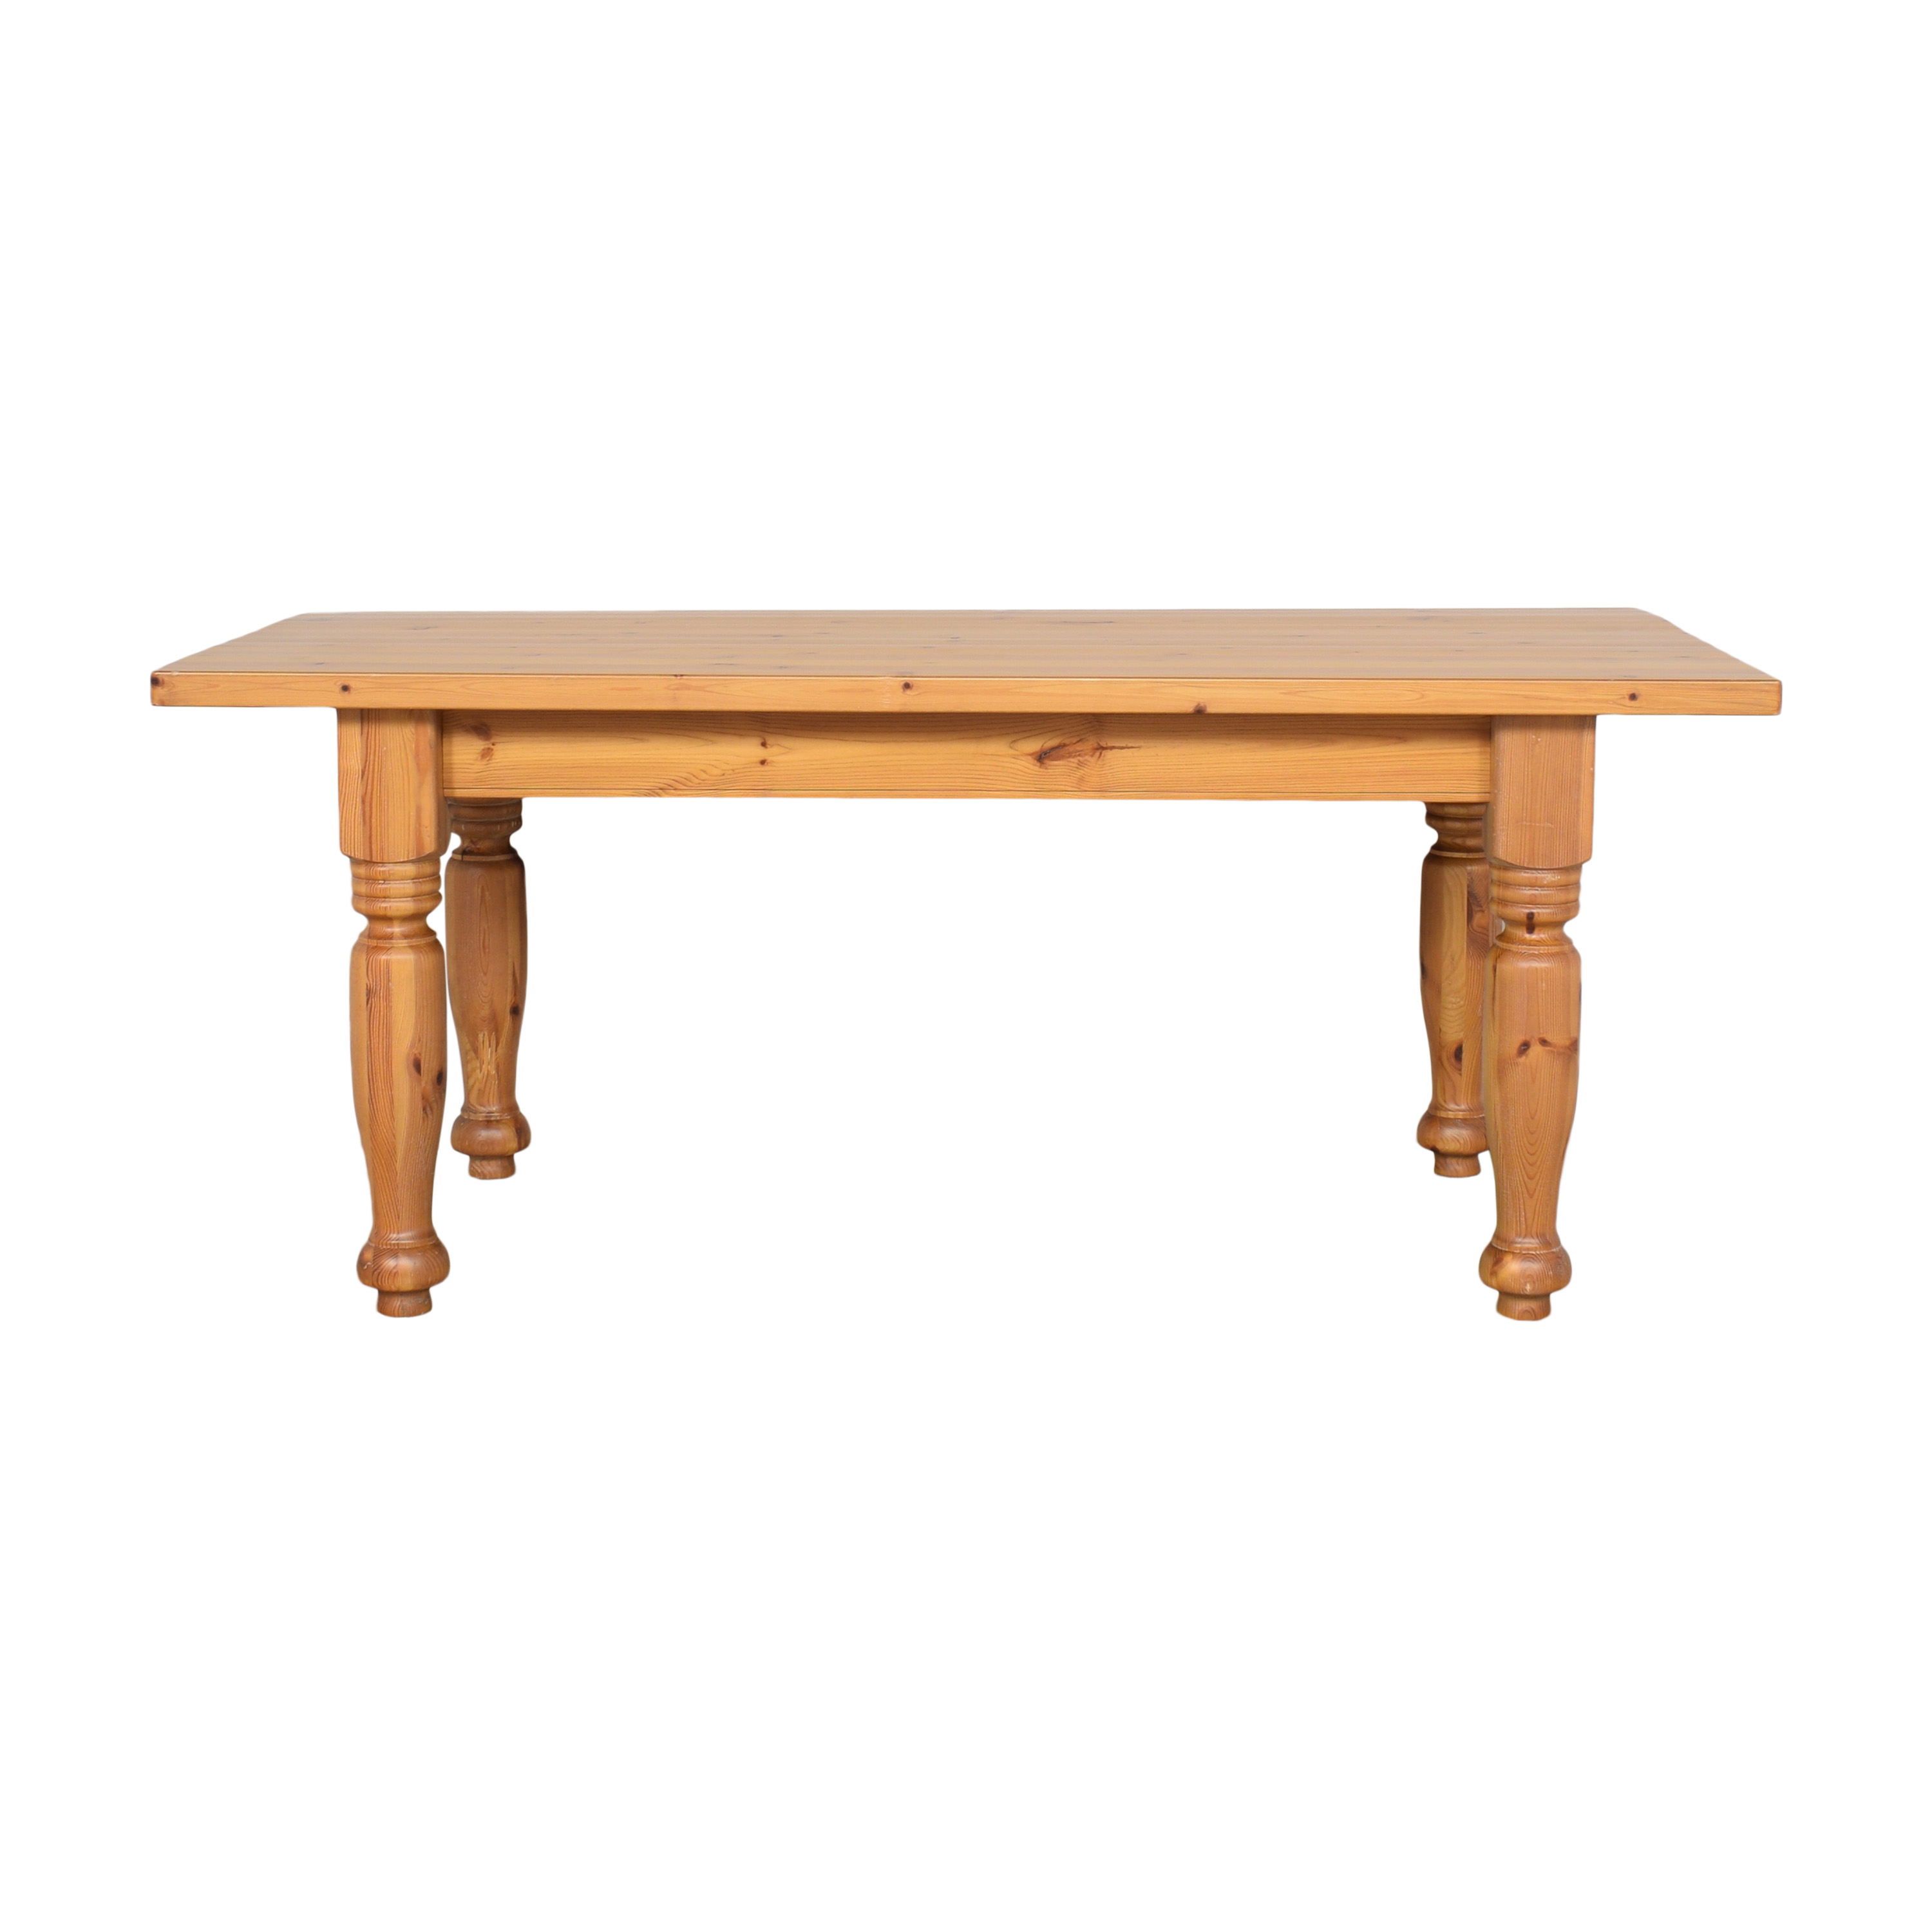 Pottery Barn Pottery Barn Rectangular Dining Table for sale